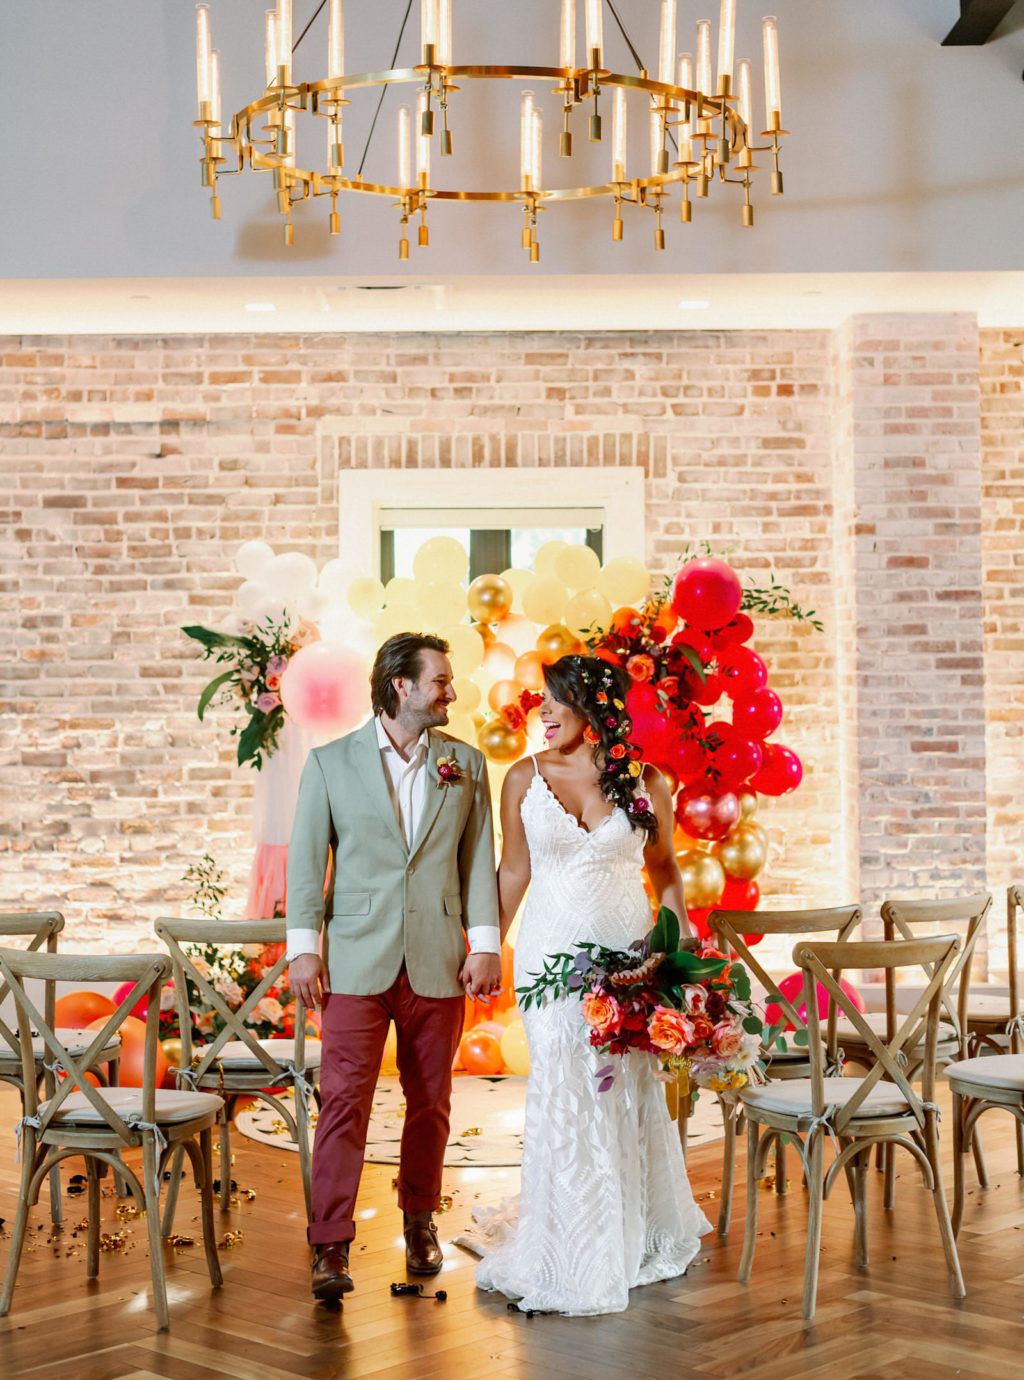 Bride and Groom Holding Hands, Whimsical and Colorful Wedding Decor, Yellow, Pink, Orange, White, Gold Fringe and Balloon Ceremony Backdrop, Wooden Cross Back Chairs, Gold and Candlestick Chandelier, White Brick Wall   Tampa Bay Wedding Photographer Dewitt for Love   St. Pete Modern Industrial Wedding Venue Red Mesa Events   Wedding Chair Rentals Kate Ryan Event Rentals